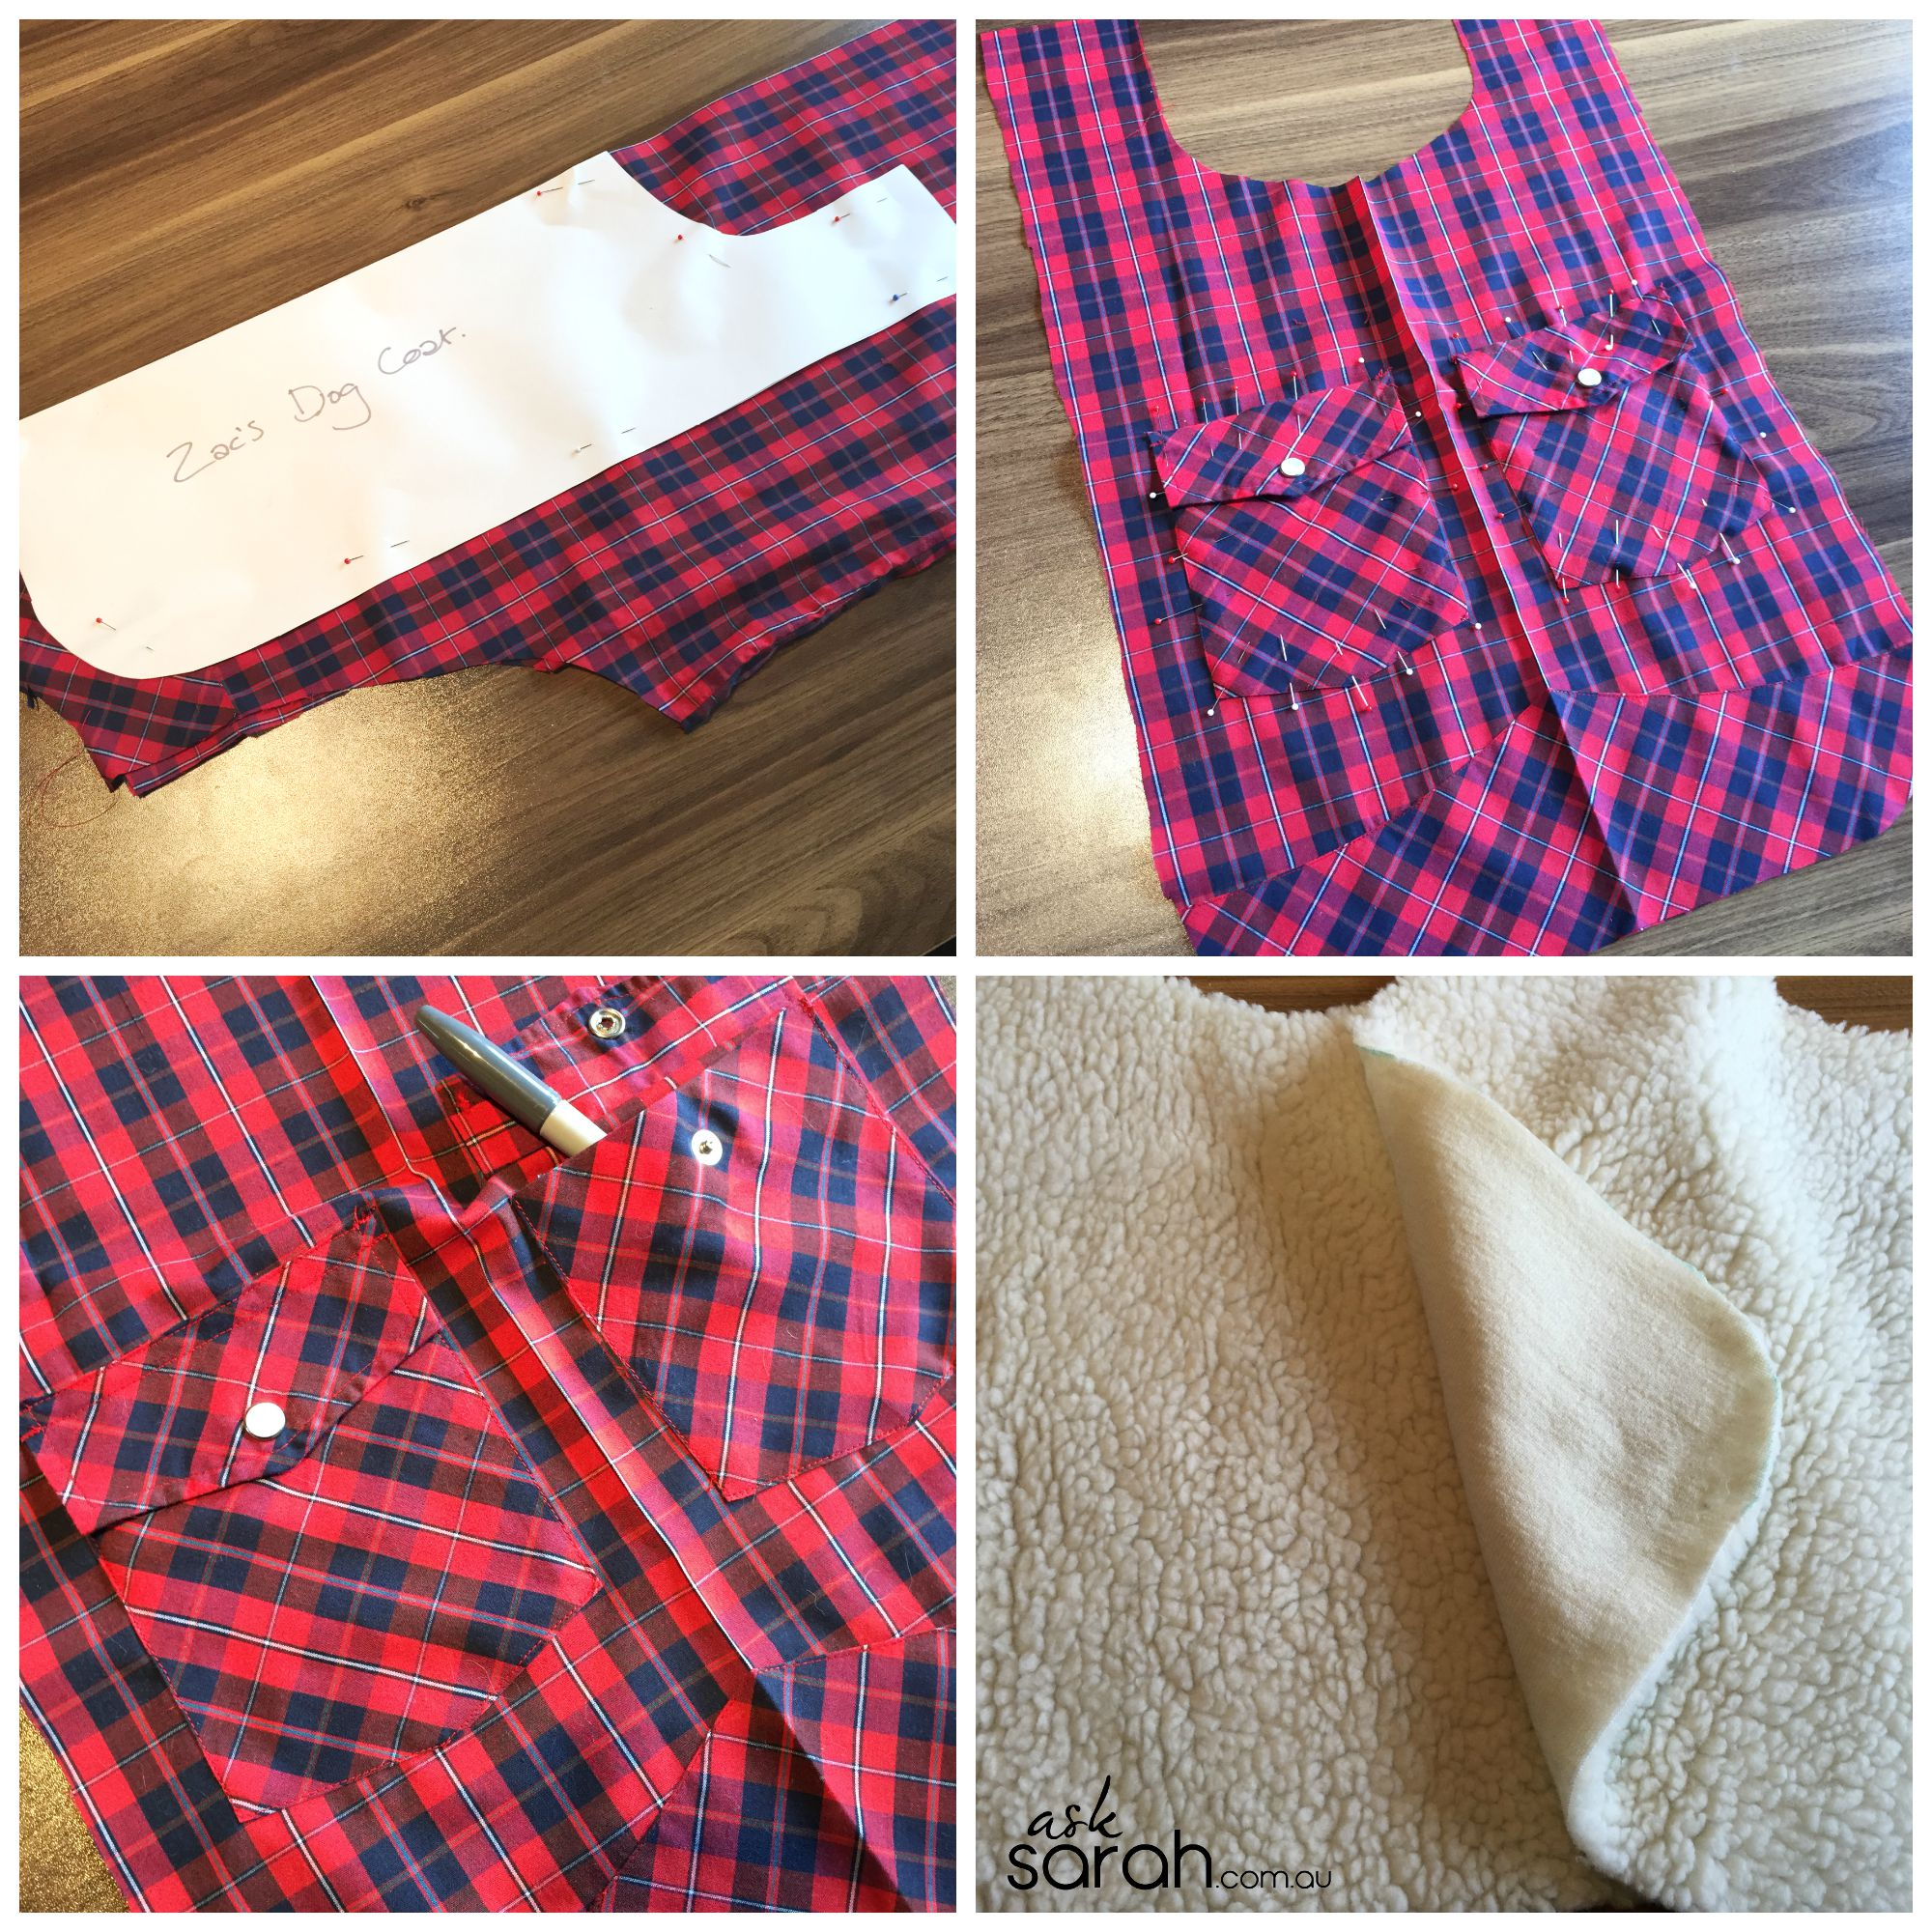 Sew: DIY Custom Fit Thrifty Dog Coats {Men's Shirt to Two Dog Coats Refashion}